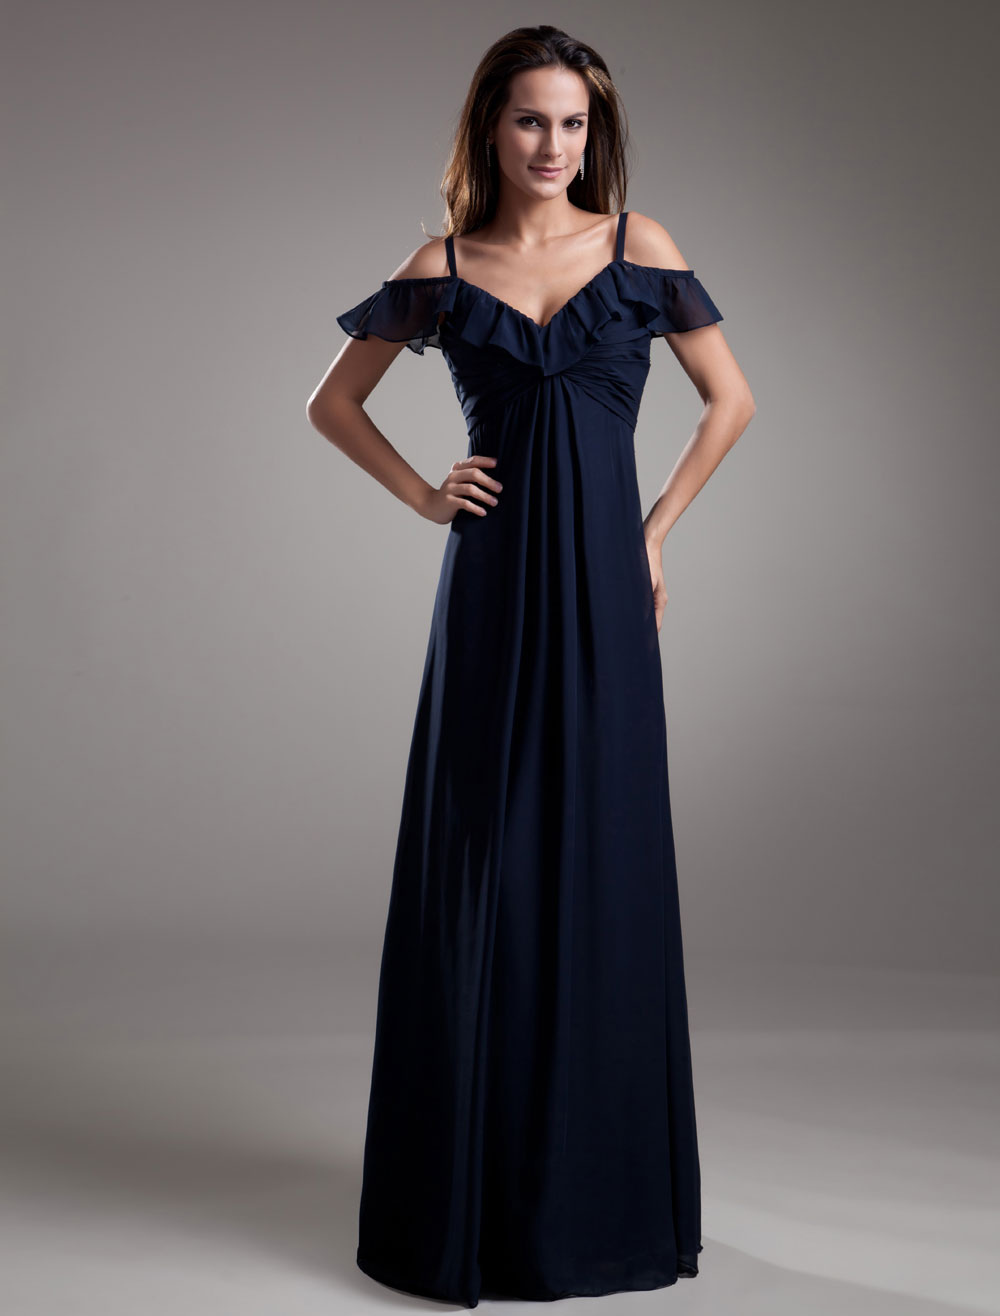 Buy Charming Dark Navy A-line Chiffon Straps Floor-Length Evening Dress with Cascading Ruffle for $112.49 in Milanoo store